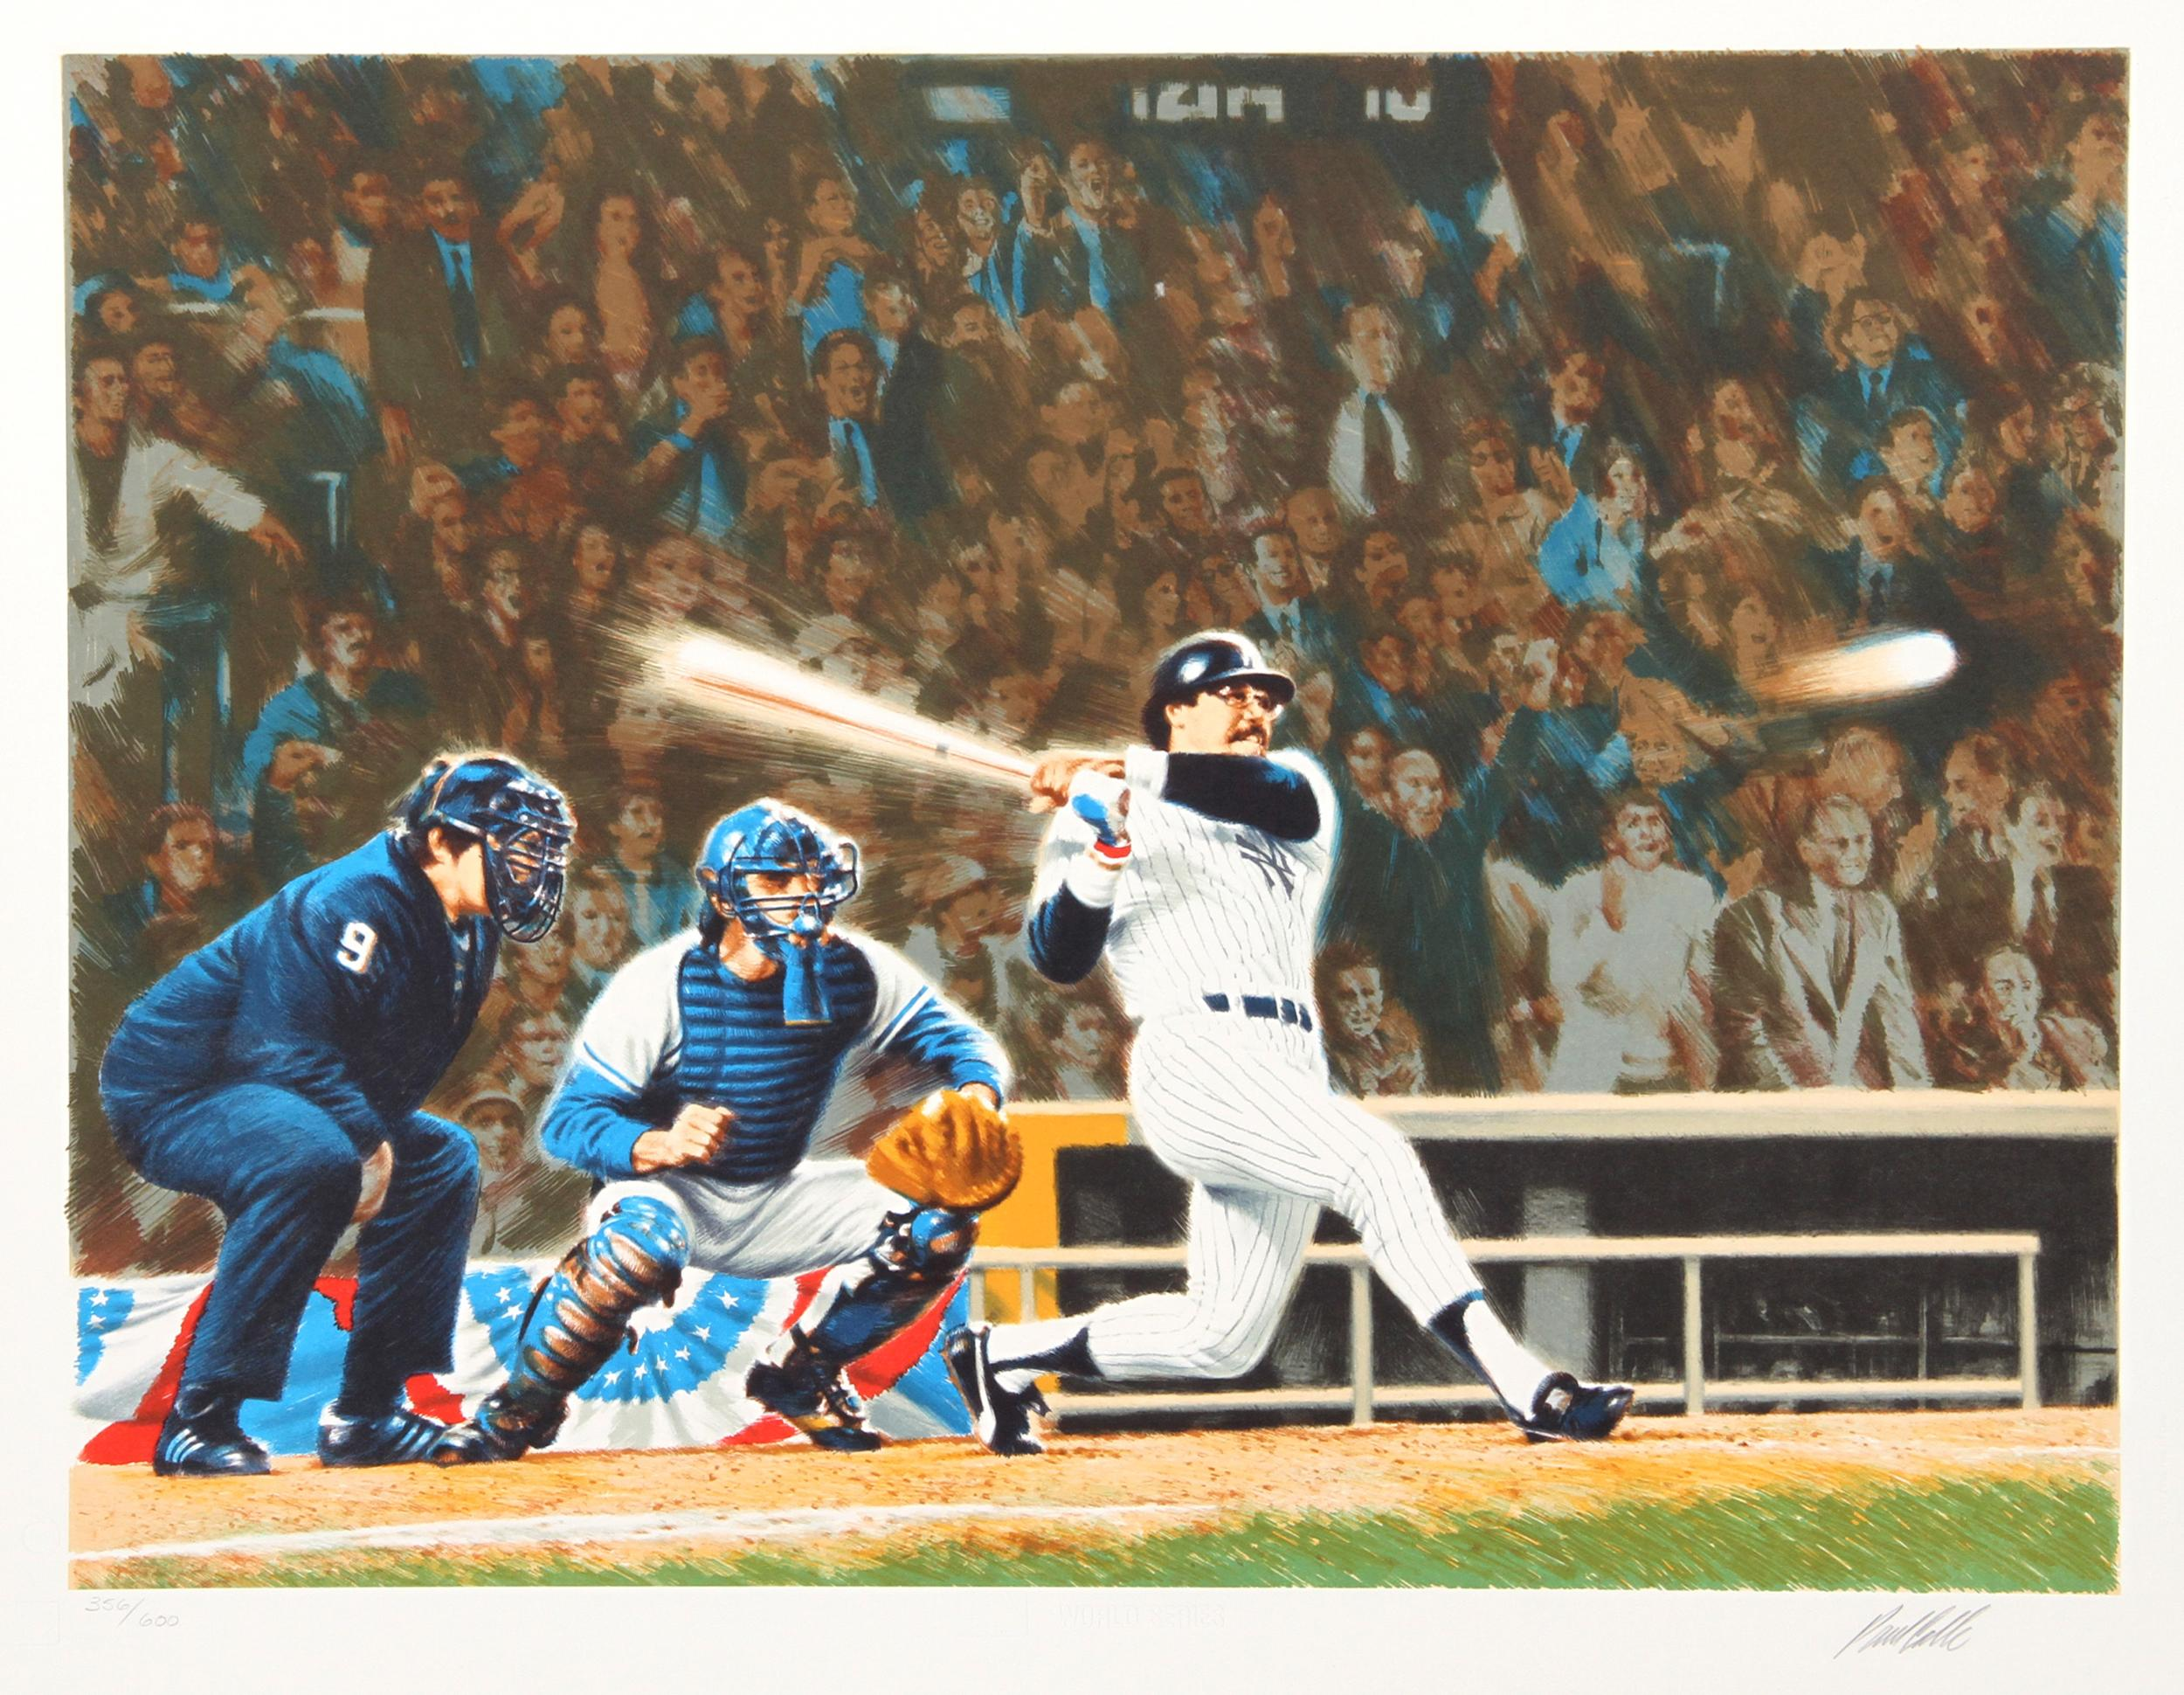 Paul Calle, Mr. October (Yankees Reggie Jackson), Lithograph